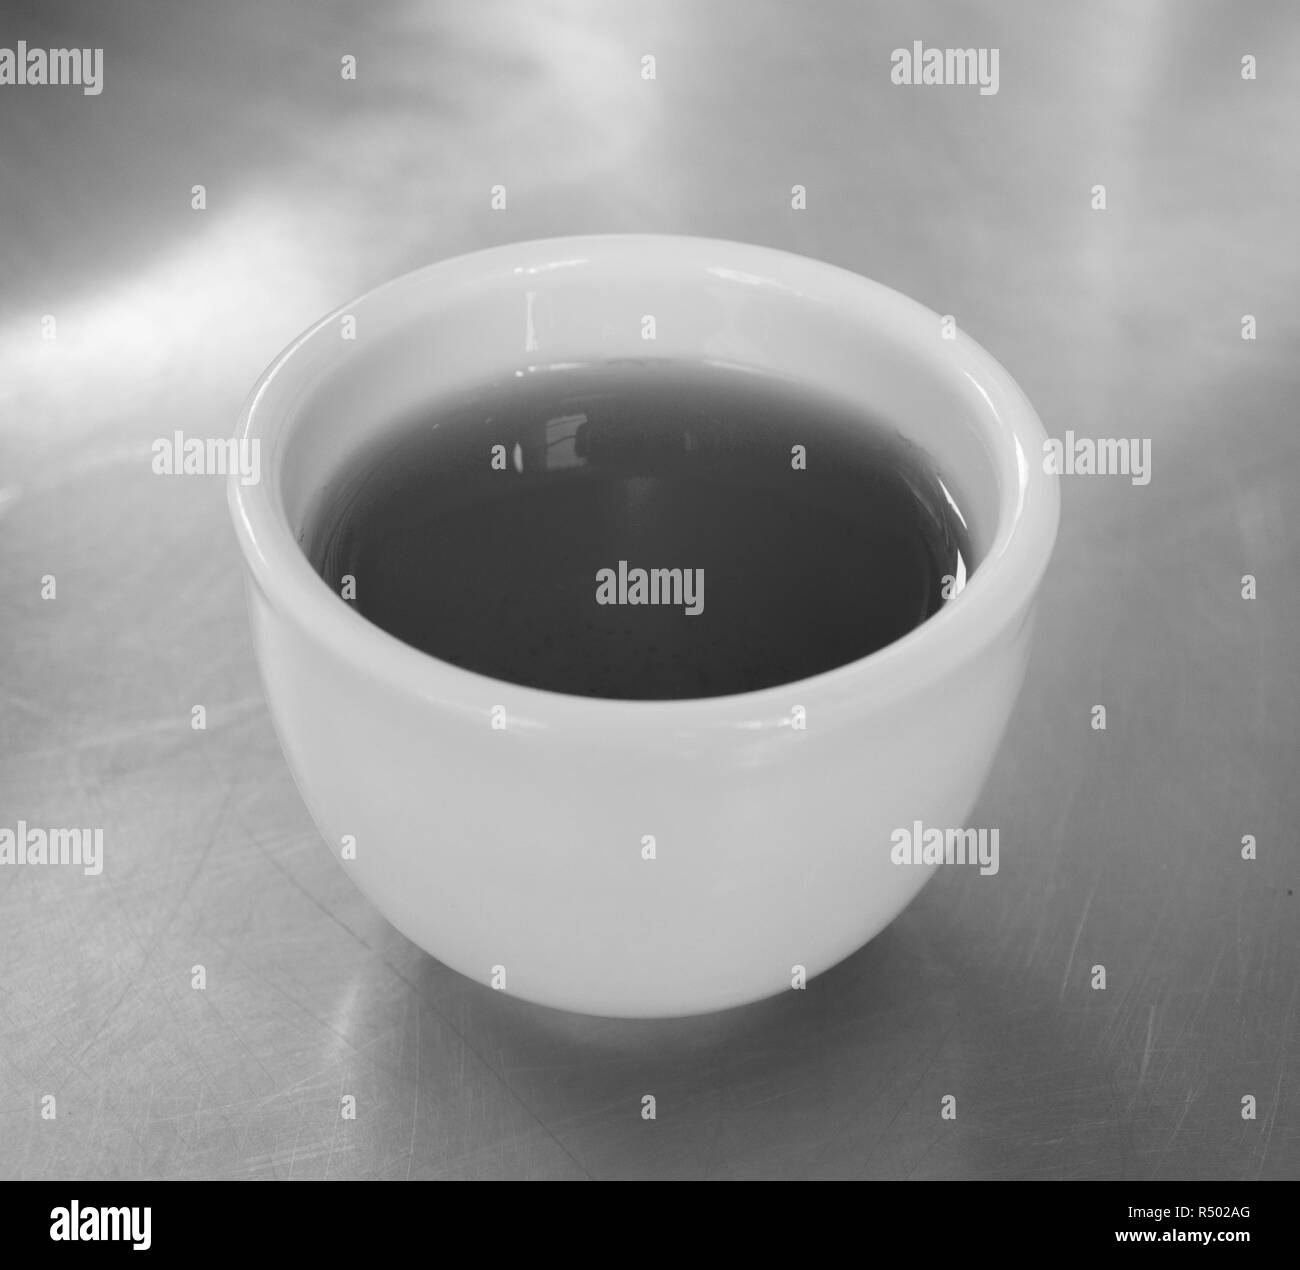 CUP OF CHINESE GREEN TEA ON STEEL TABLE - Stock Image